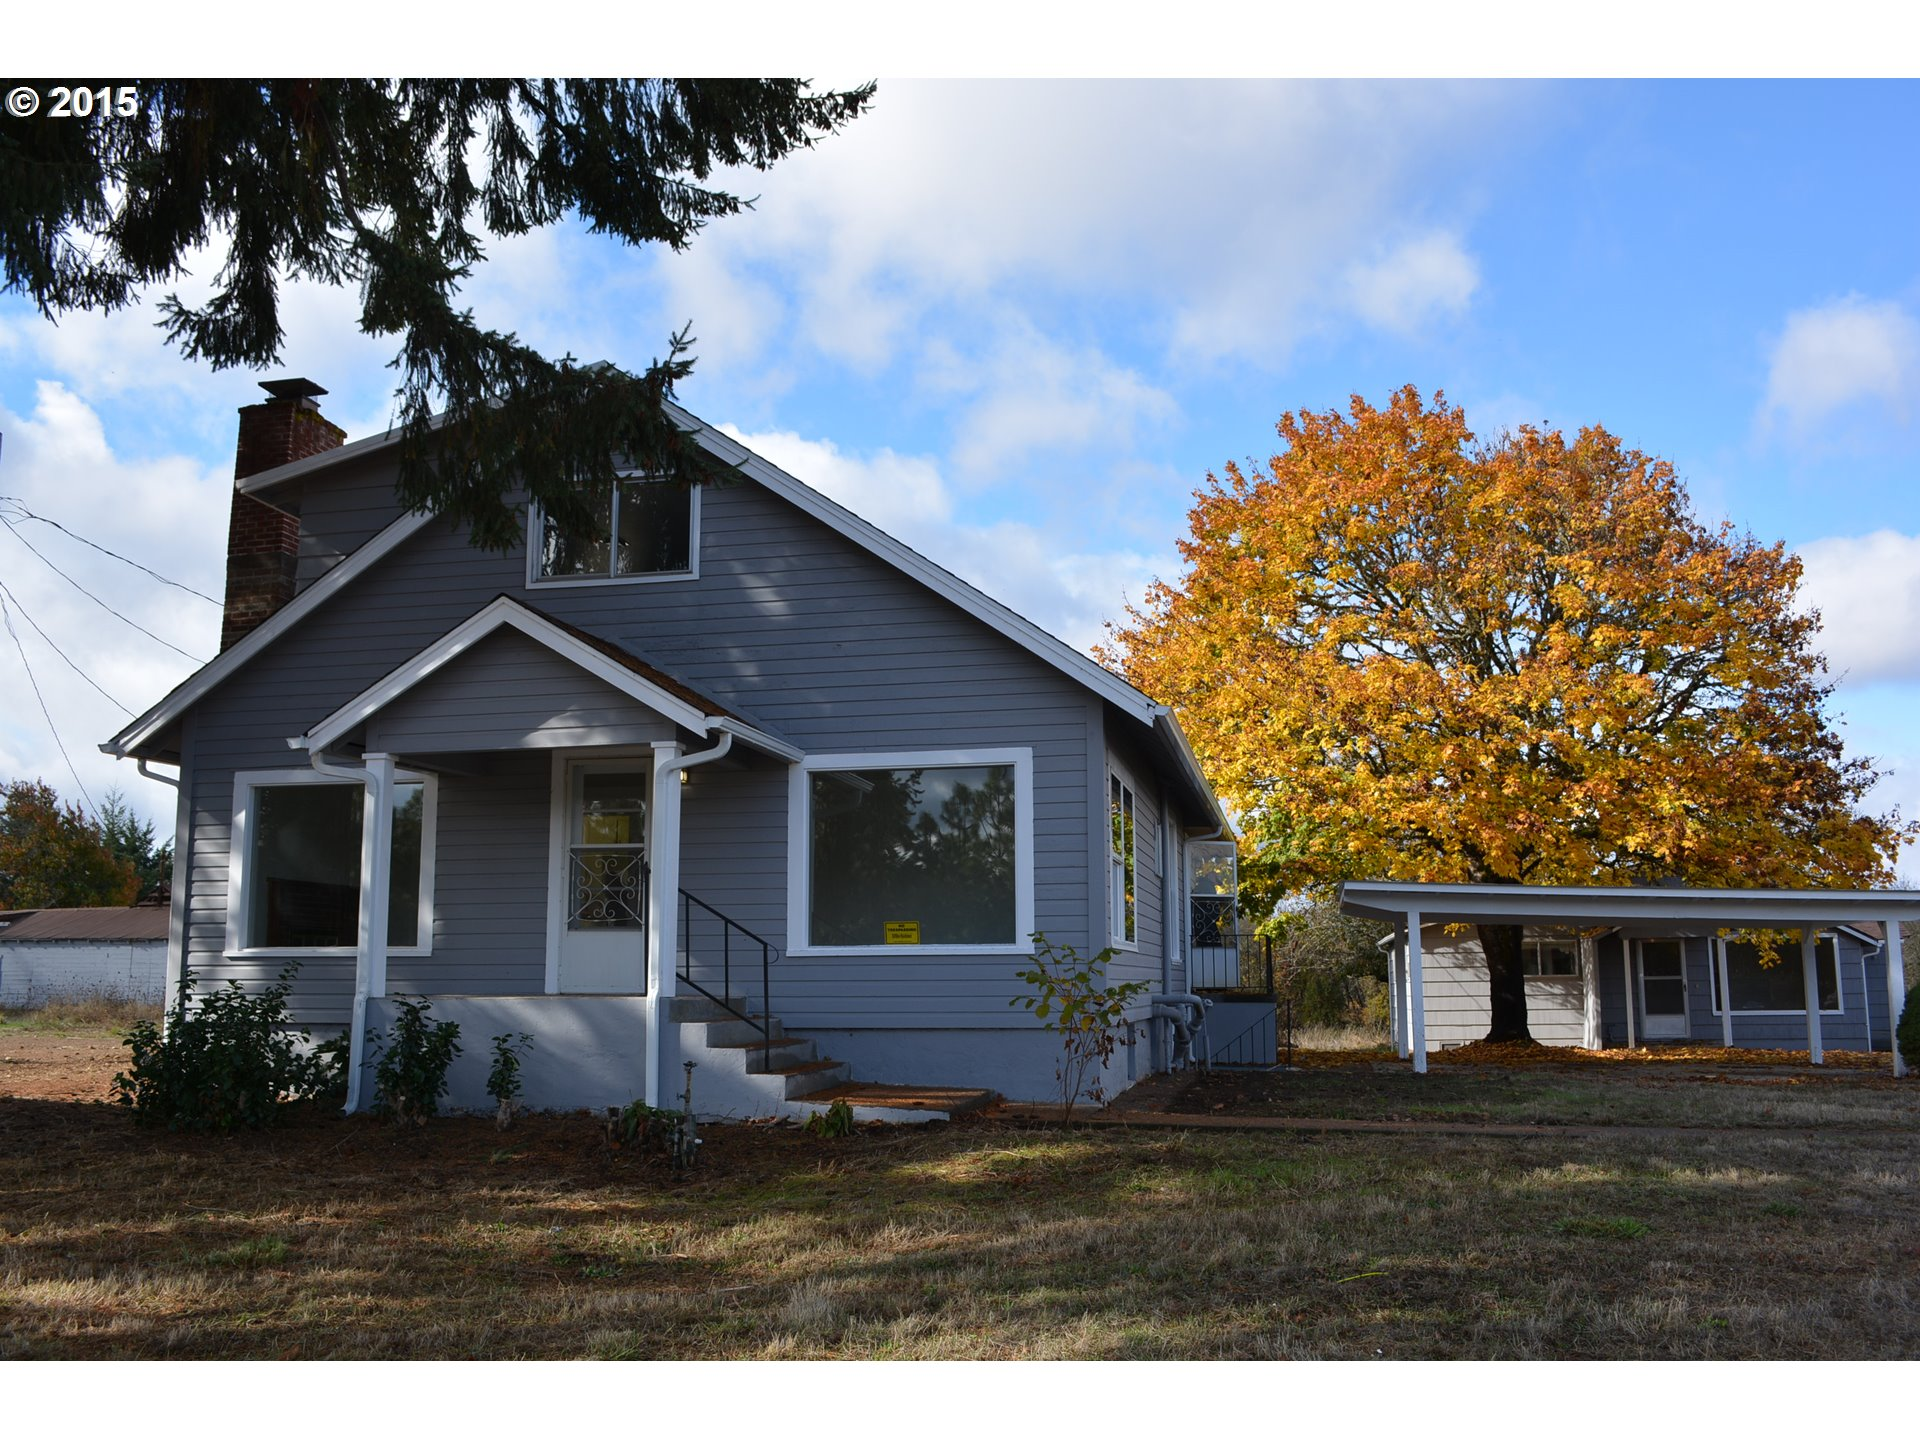 83654 N Harvey Rd, Creswell, OR